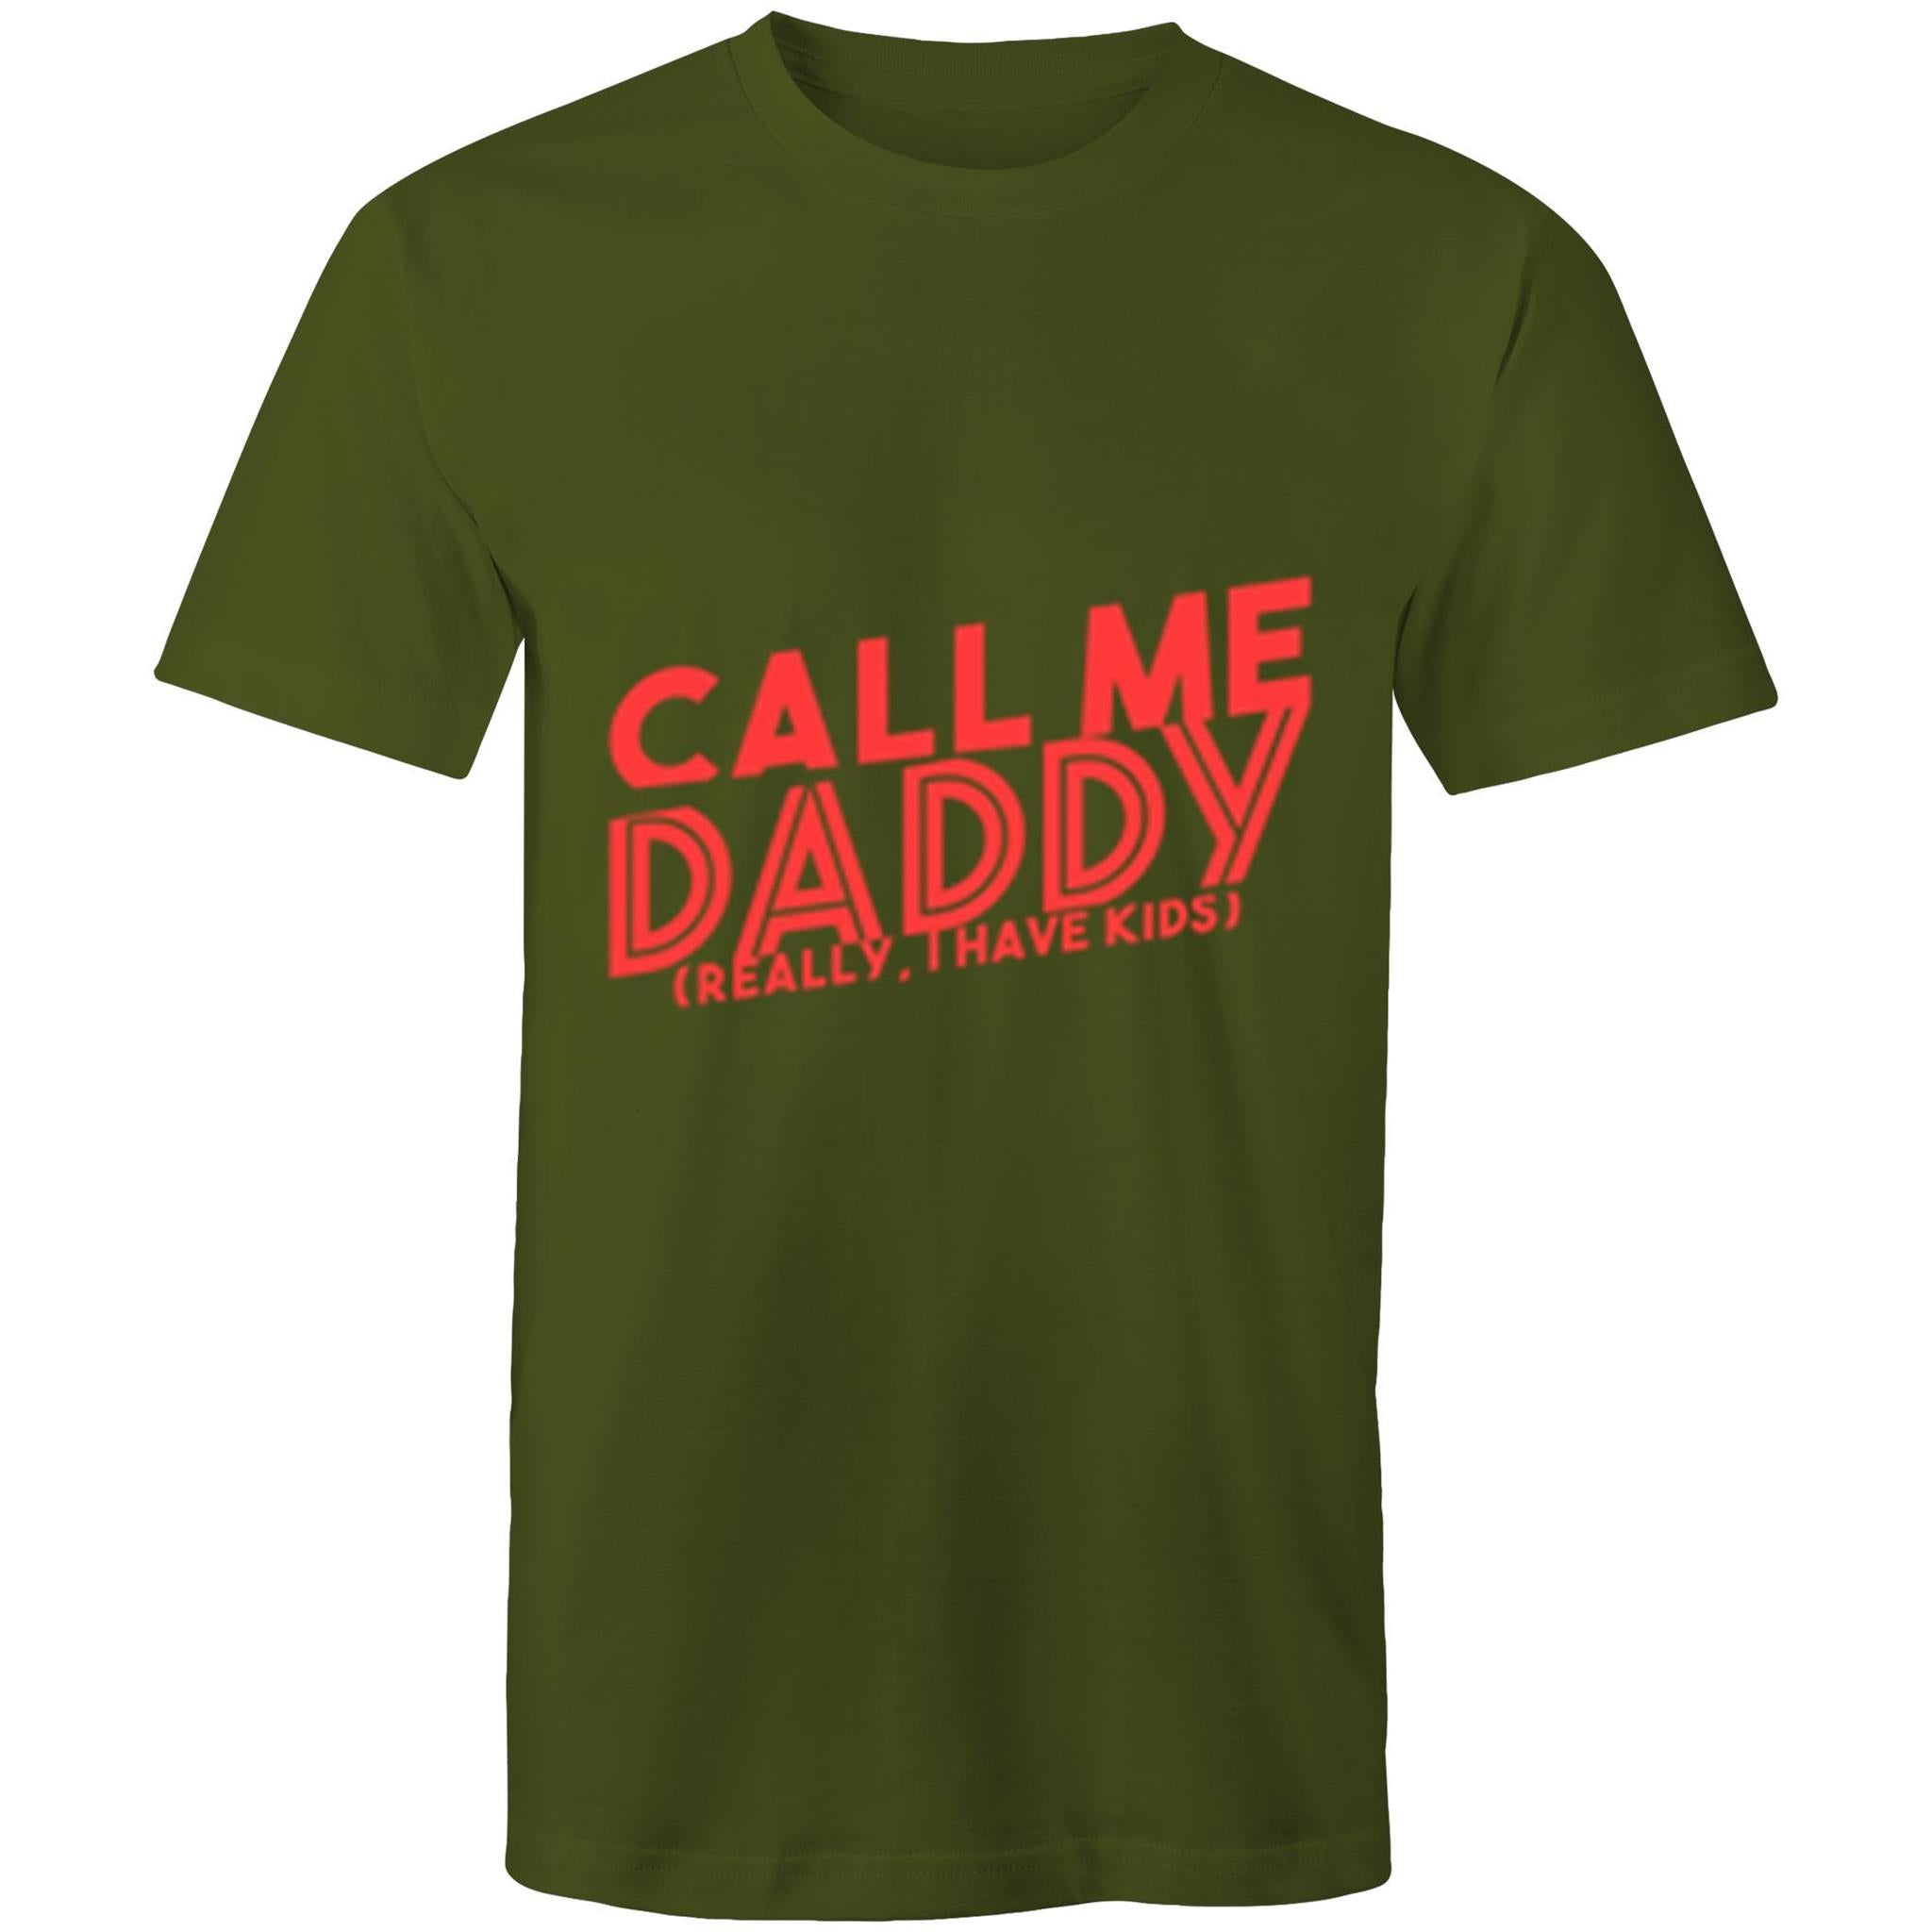 Call me daddy, really (Mens S - 5XL)